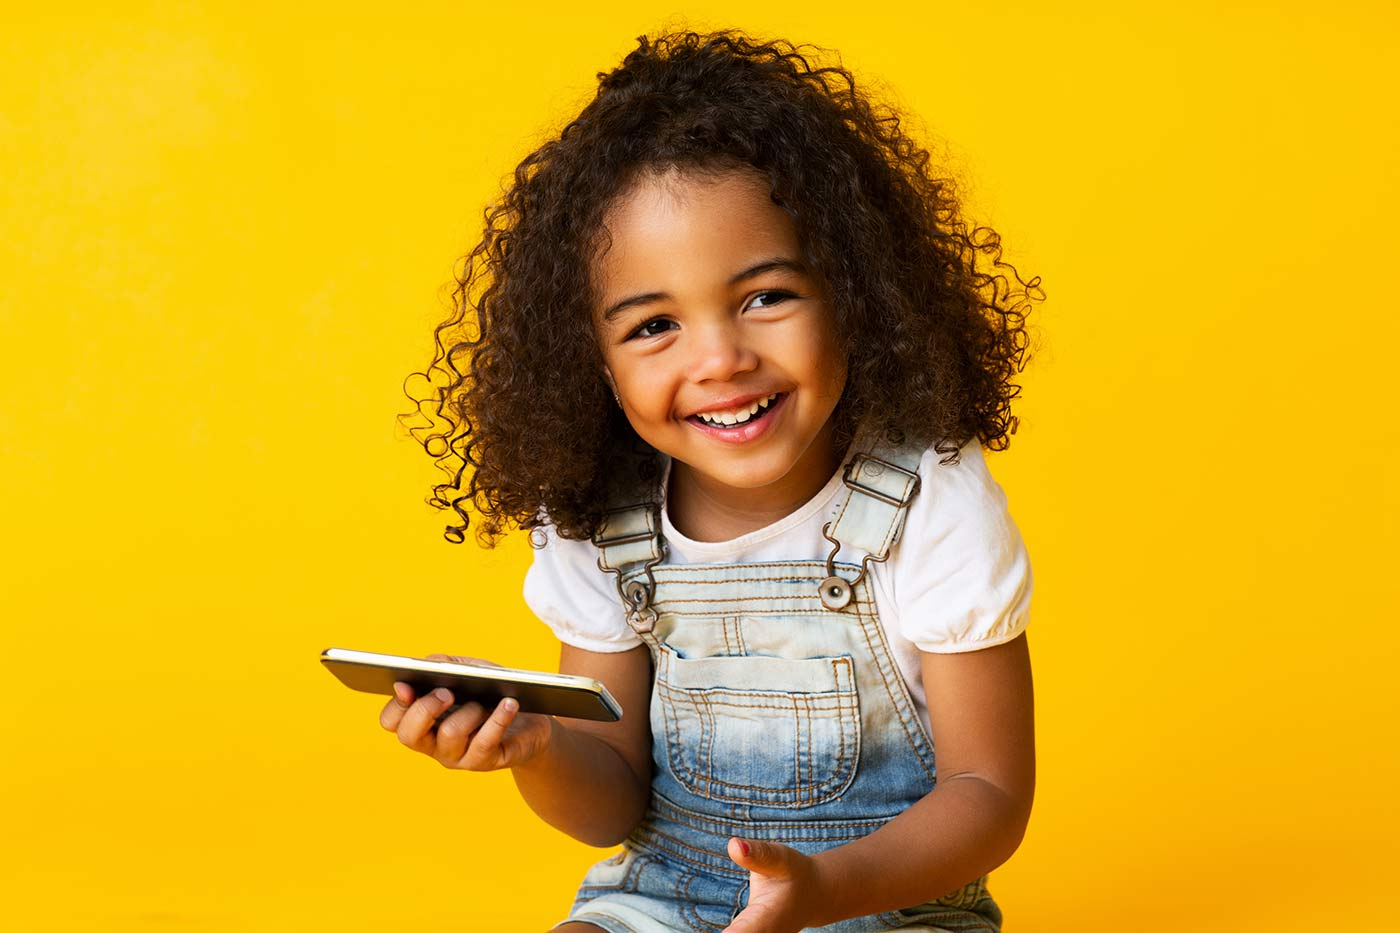 Girl holding cellphone and smiling